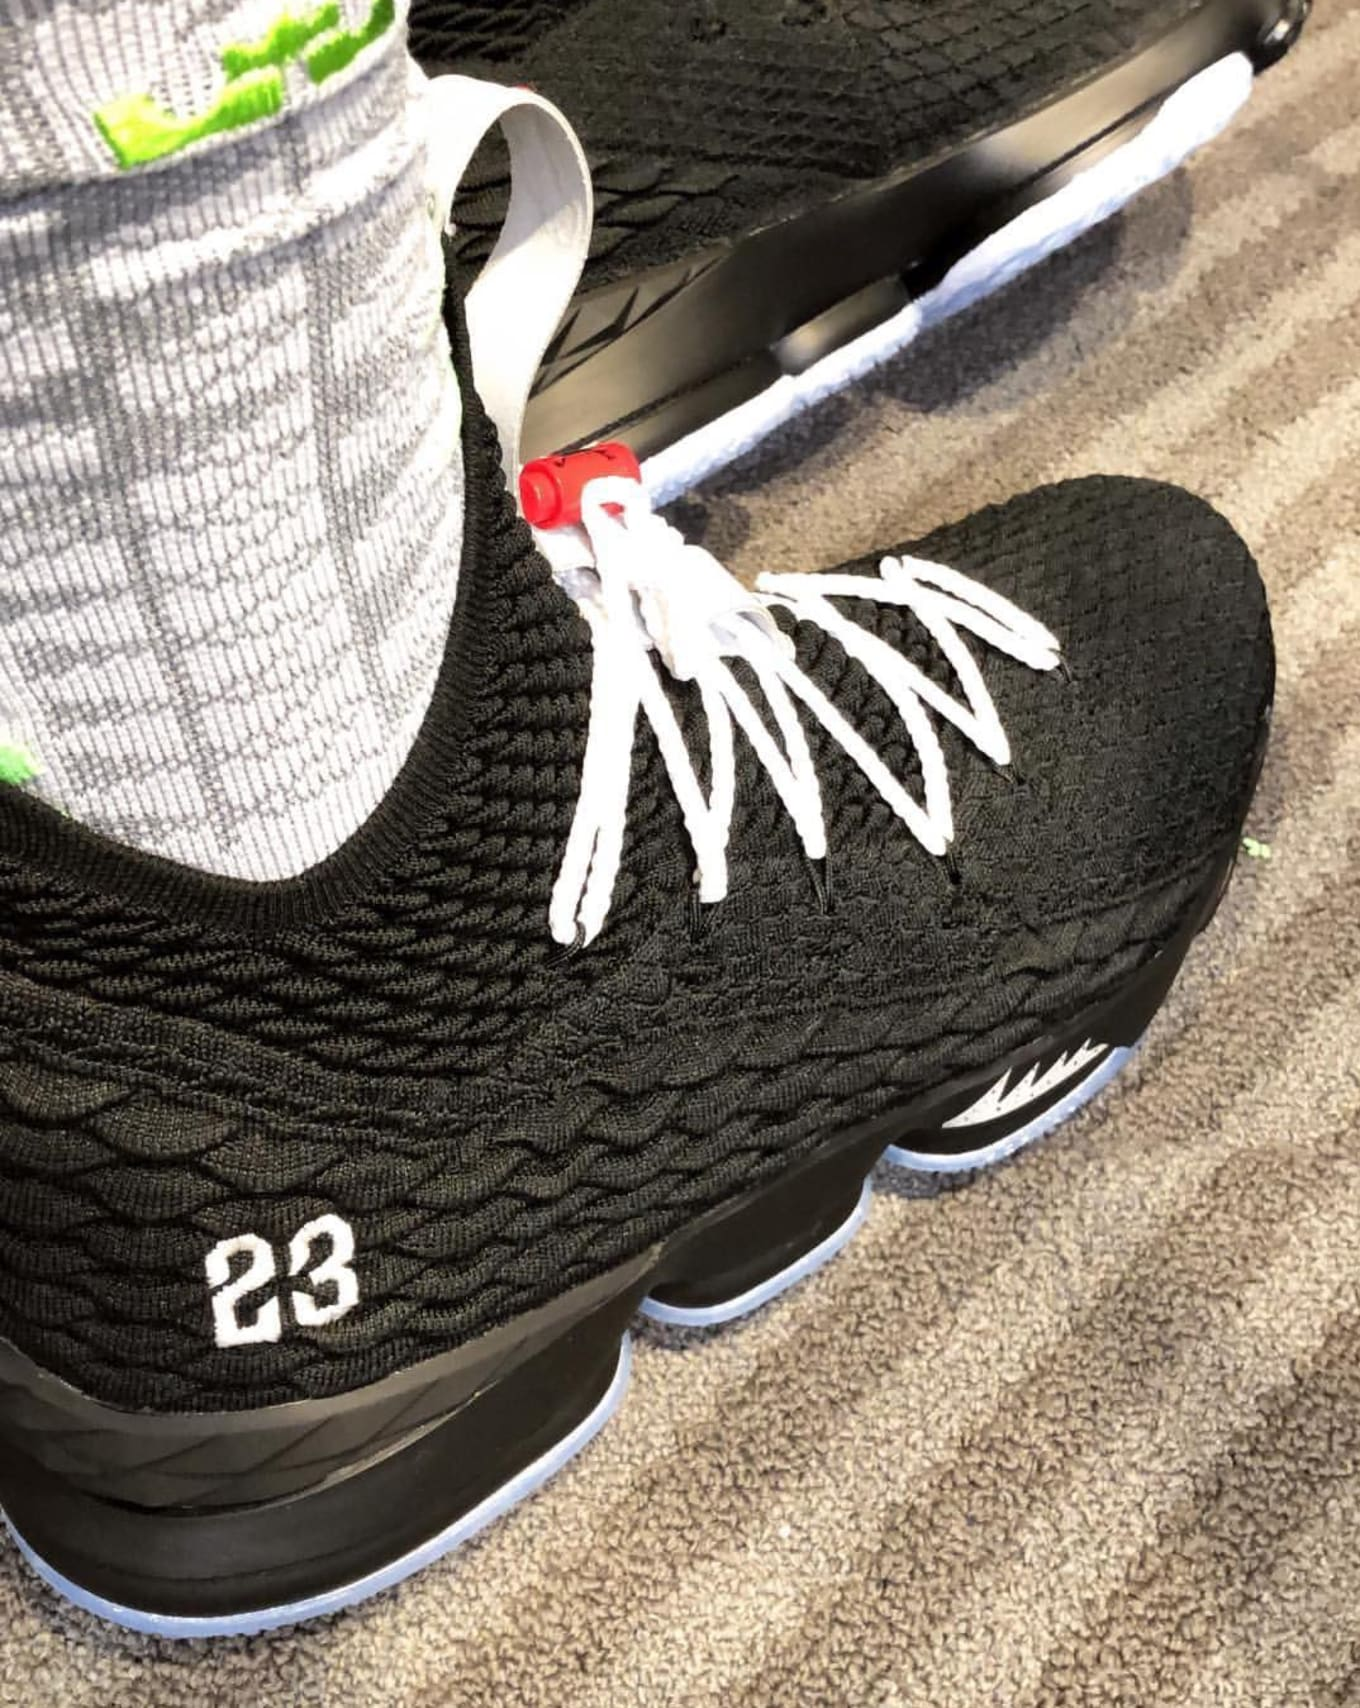 LeBron James Pays Tribute to Michael Jordan with Special Sneakers 3c12fe498